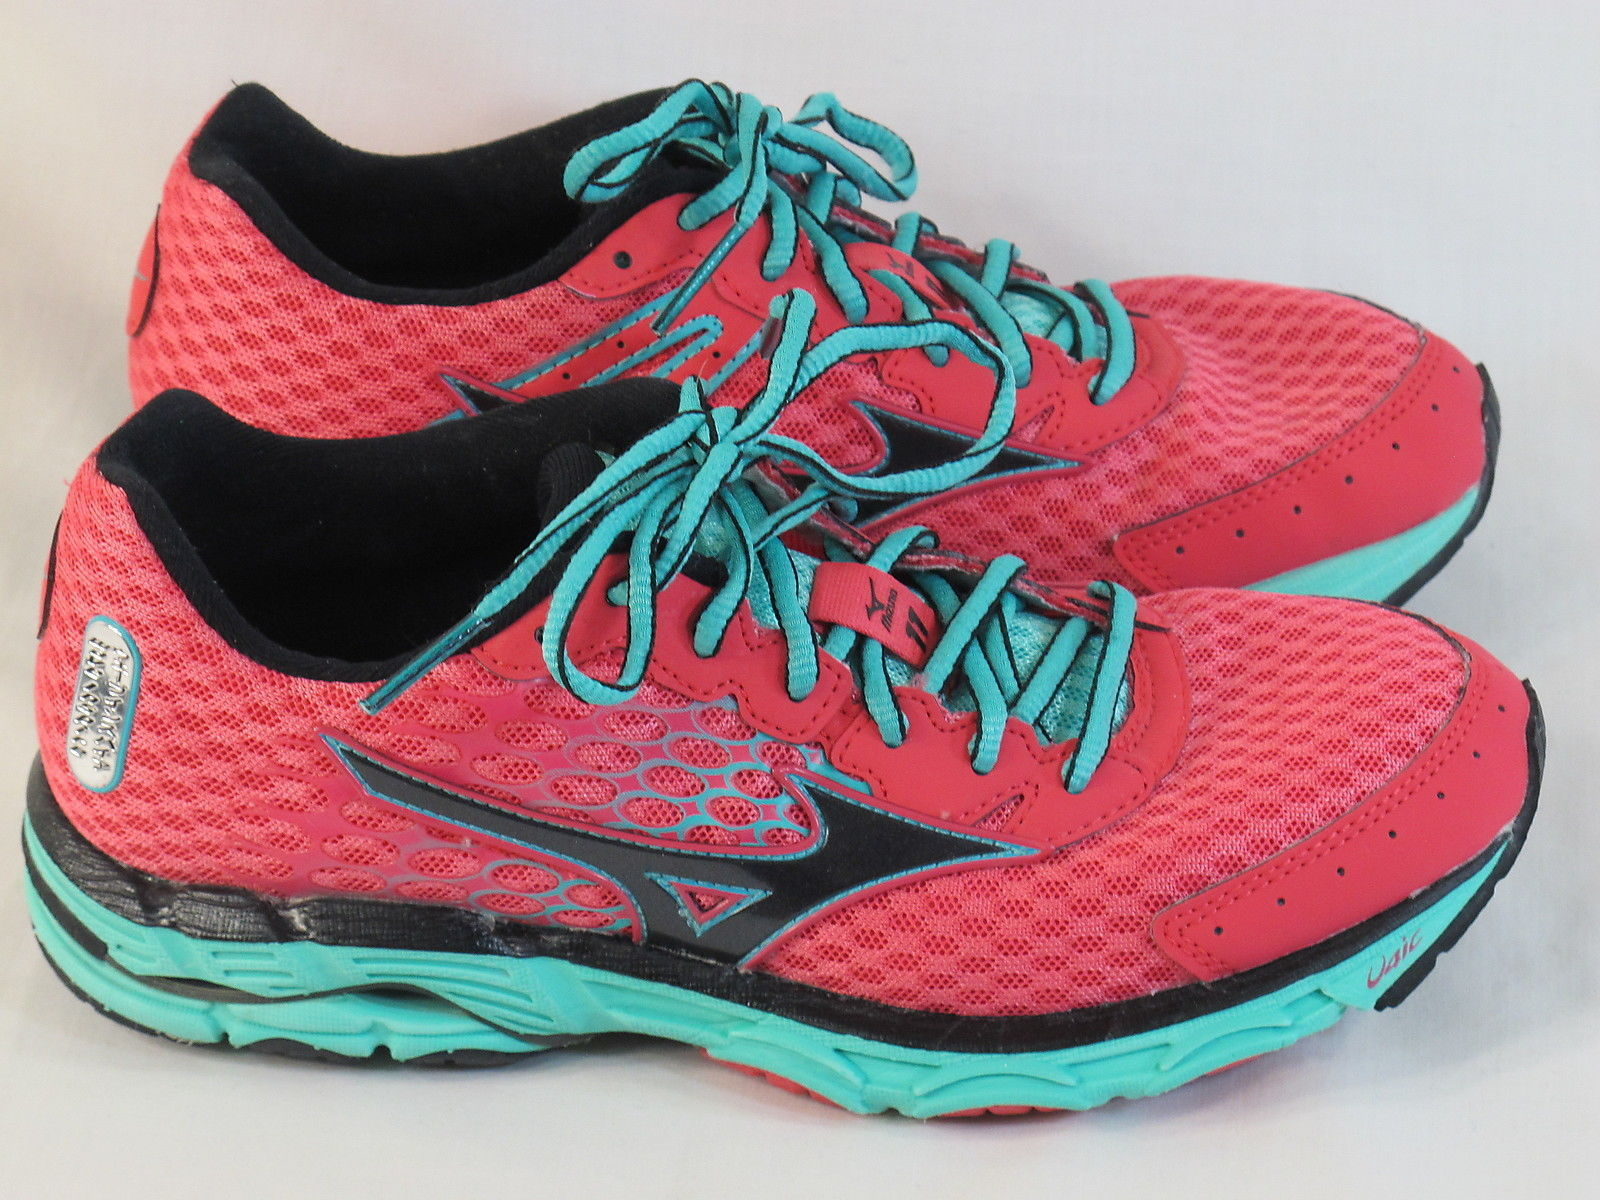 brand new e7d6b 4abb8 Mizuno Wave Inspire 11 Running Shoes Women s Size 7 US Near Mint Condition